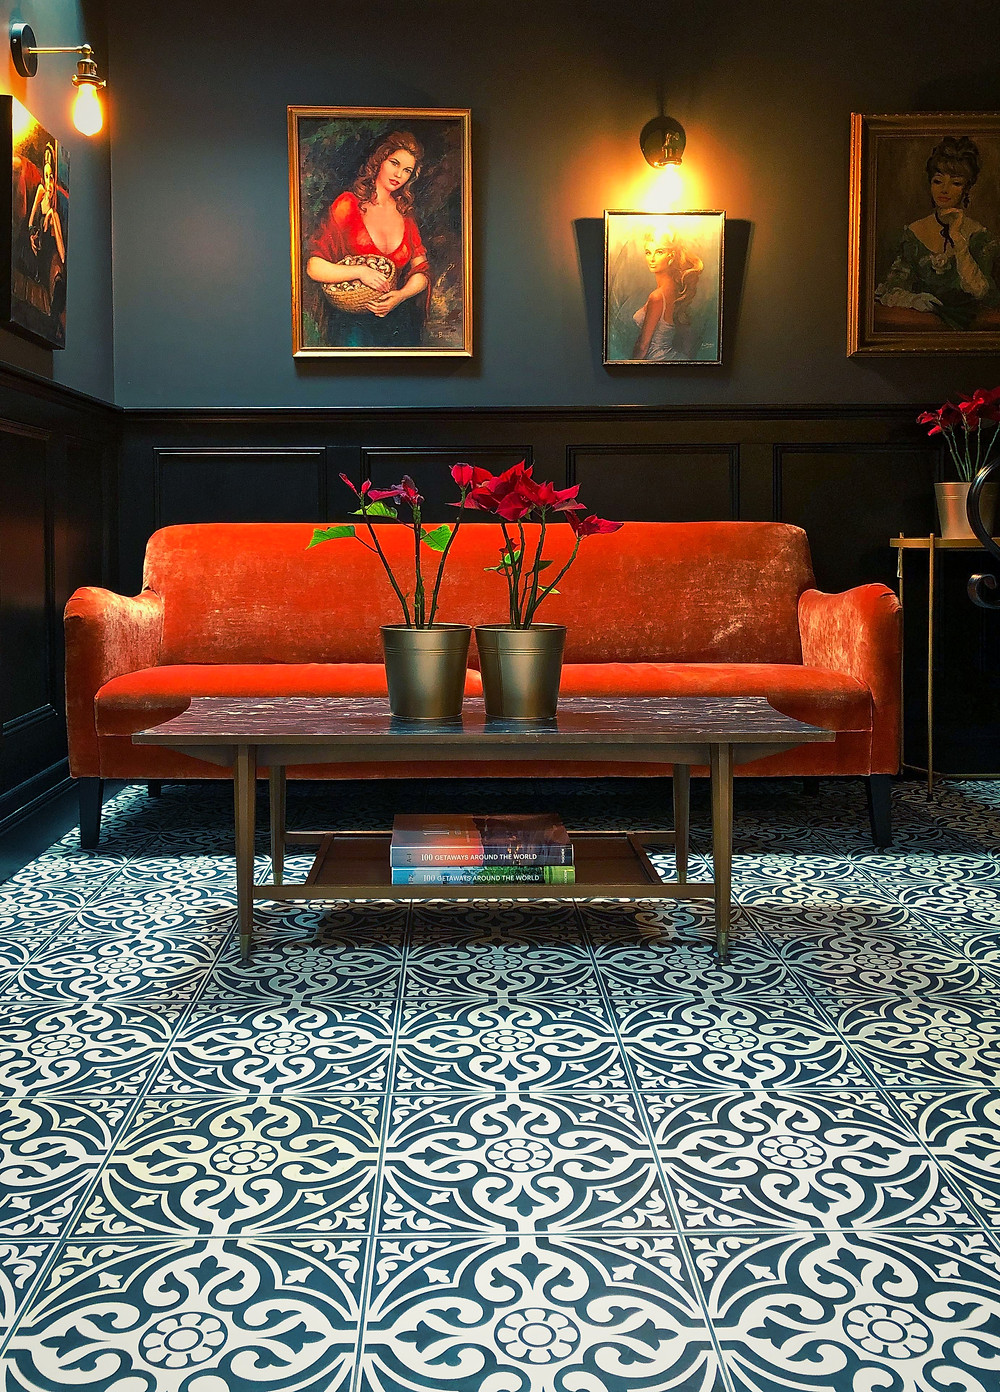 Plush orange velvet sofa and intricate floor tiling in the lobby of The Continental Hotel in Galway, Ireland